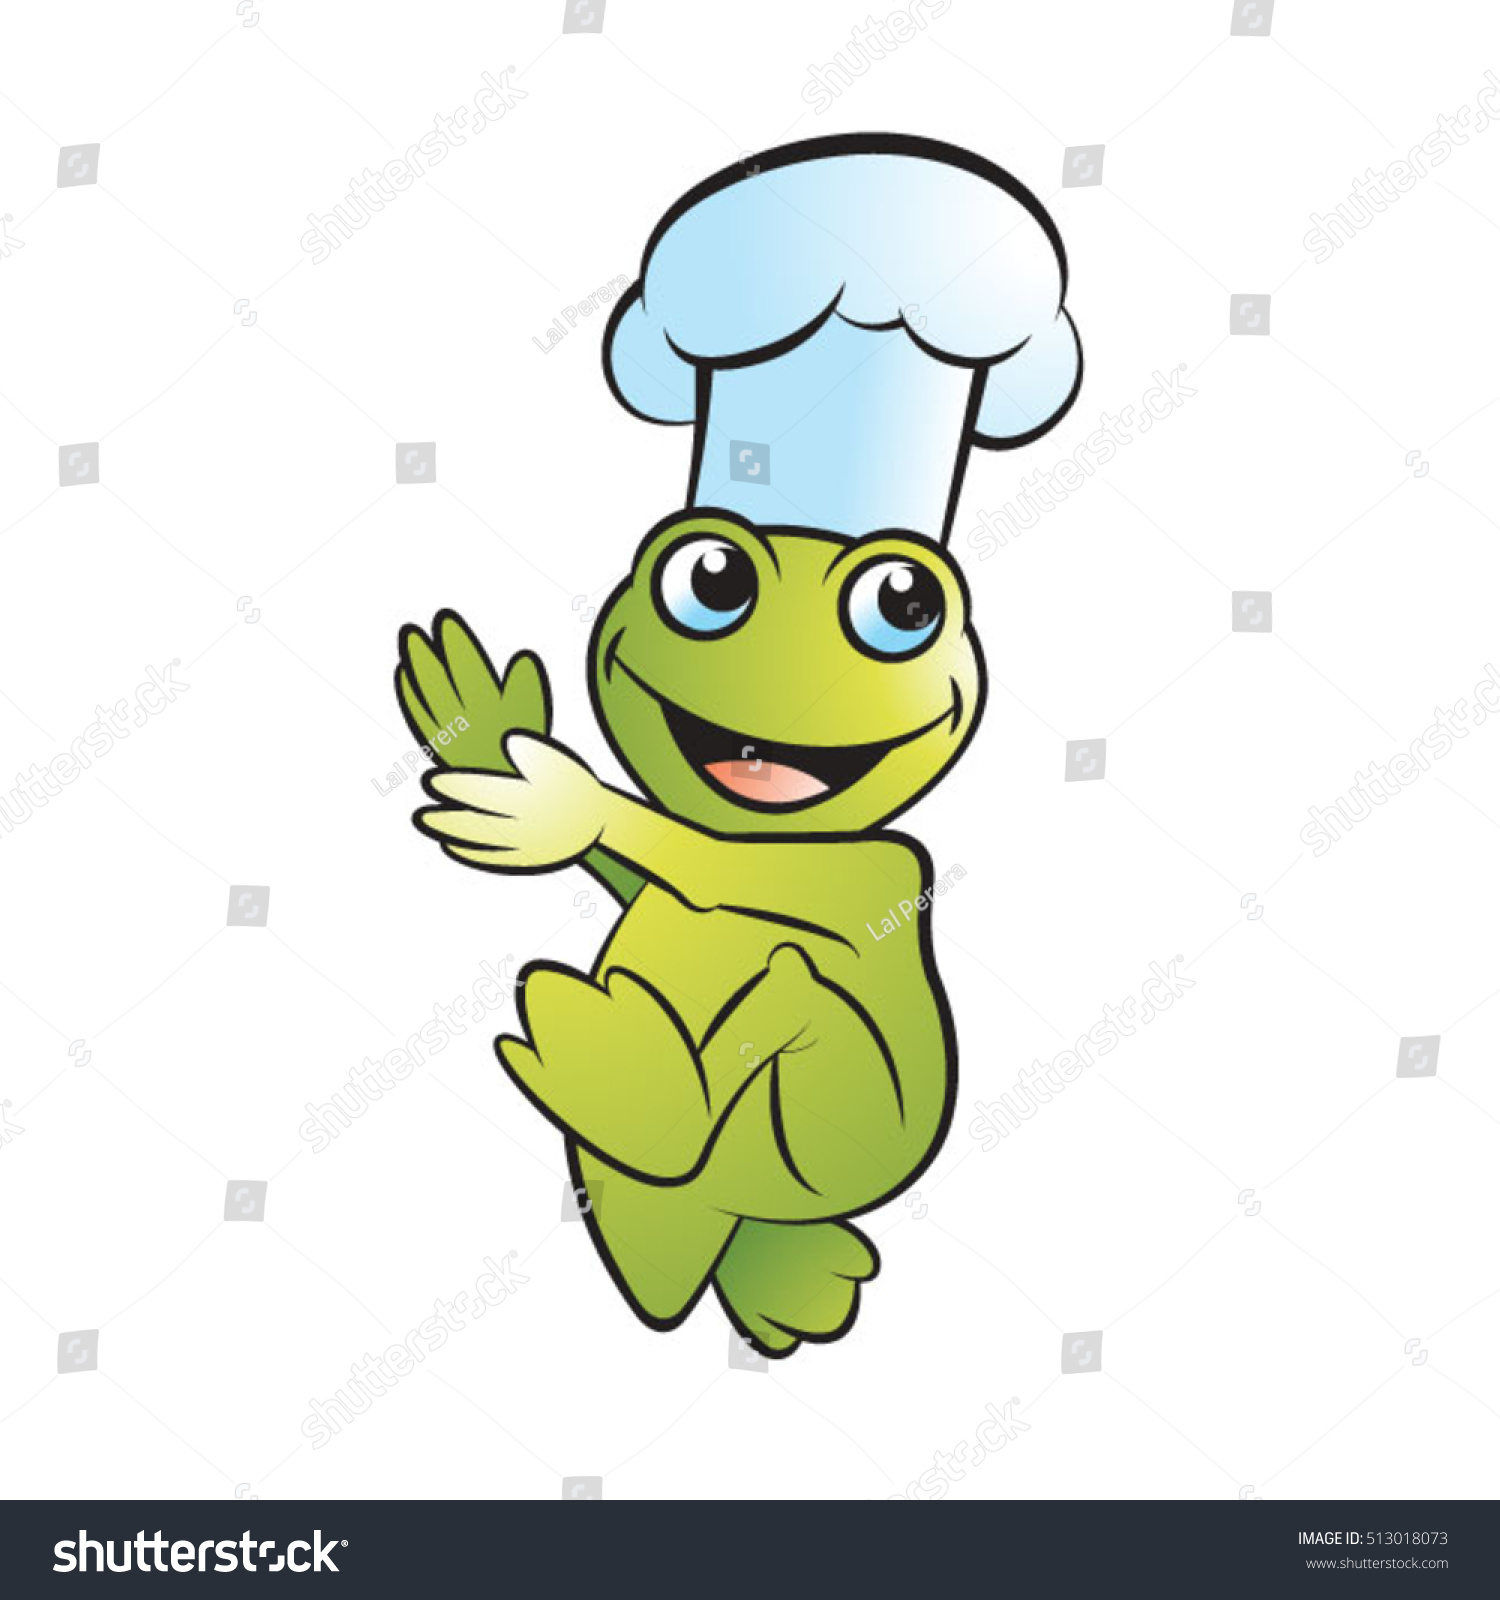 frog chef hat walking happilyvector drawing stock vector royalty rh shutterstock com Cute Frogs Frog Prince